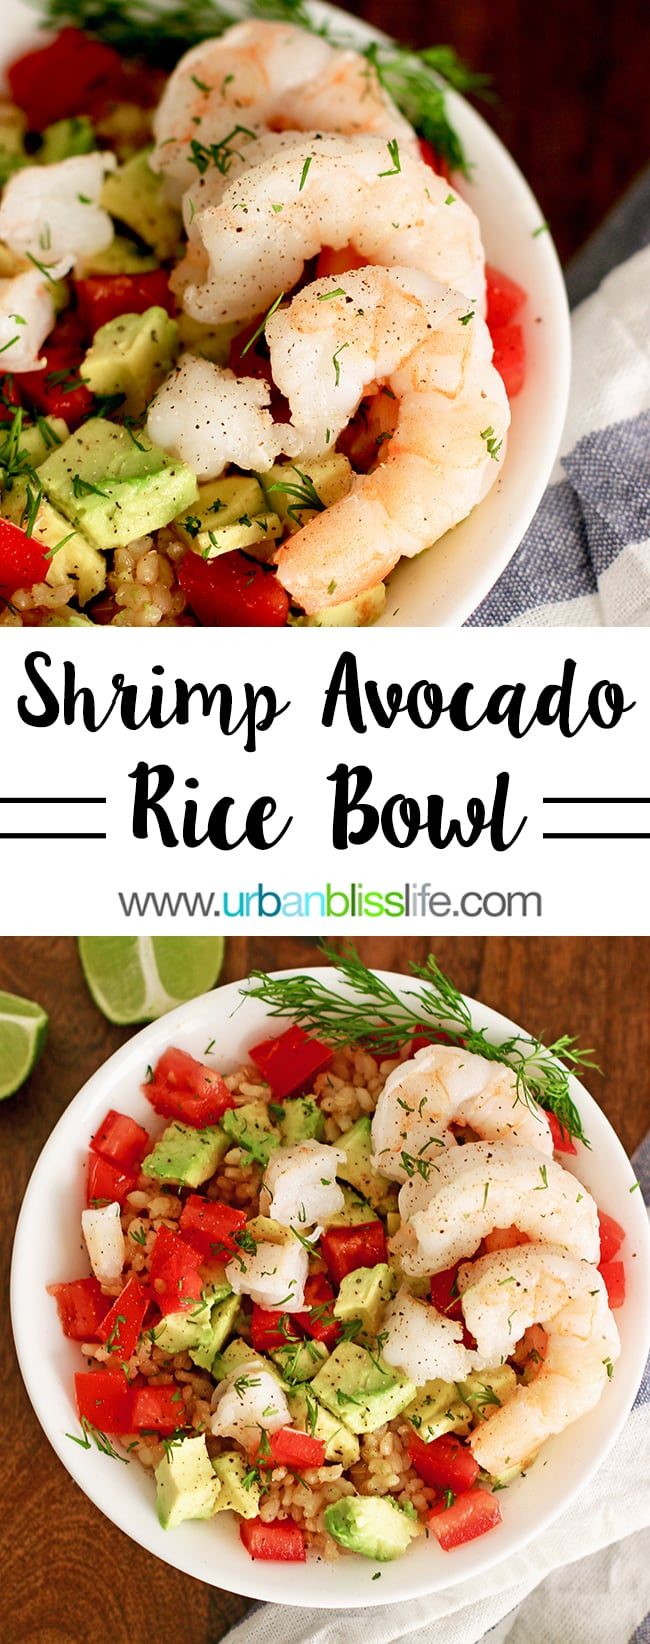 Gluten free dairy free recipes - Shrimp Avocado Brown Rice Bowl on UrbanBlissLife.com